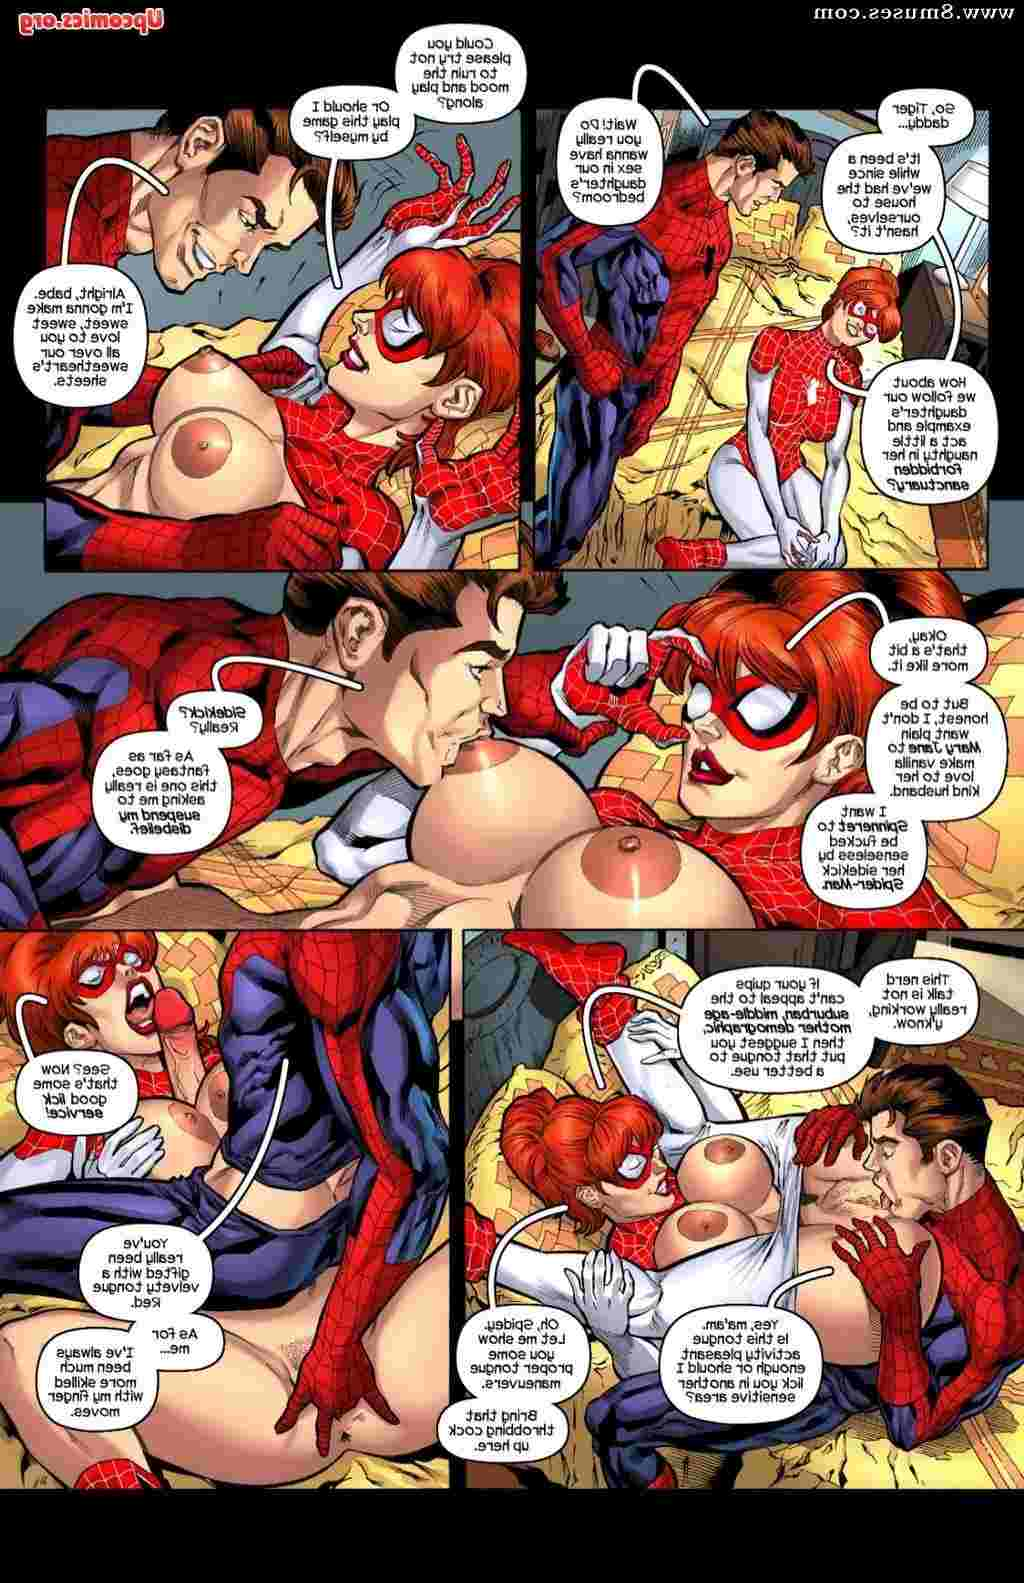 Tracy-Scops-Comics/Scions-The-Spidercest-Legacy Scions_-_The_Spidercest_Legacy__8muses_-_Sex_and_Porn_Comics_11.jpg